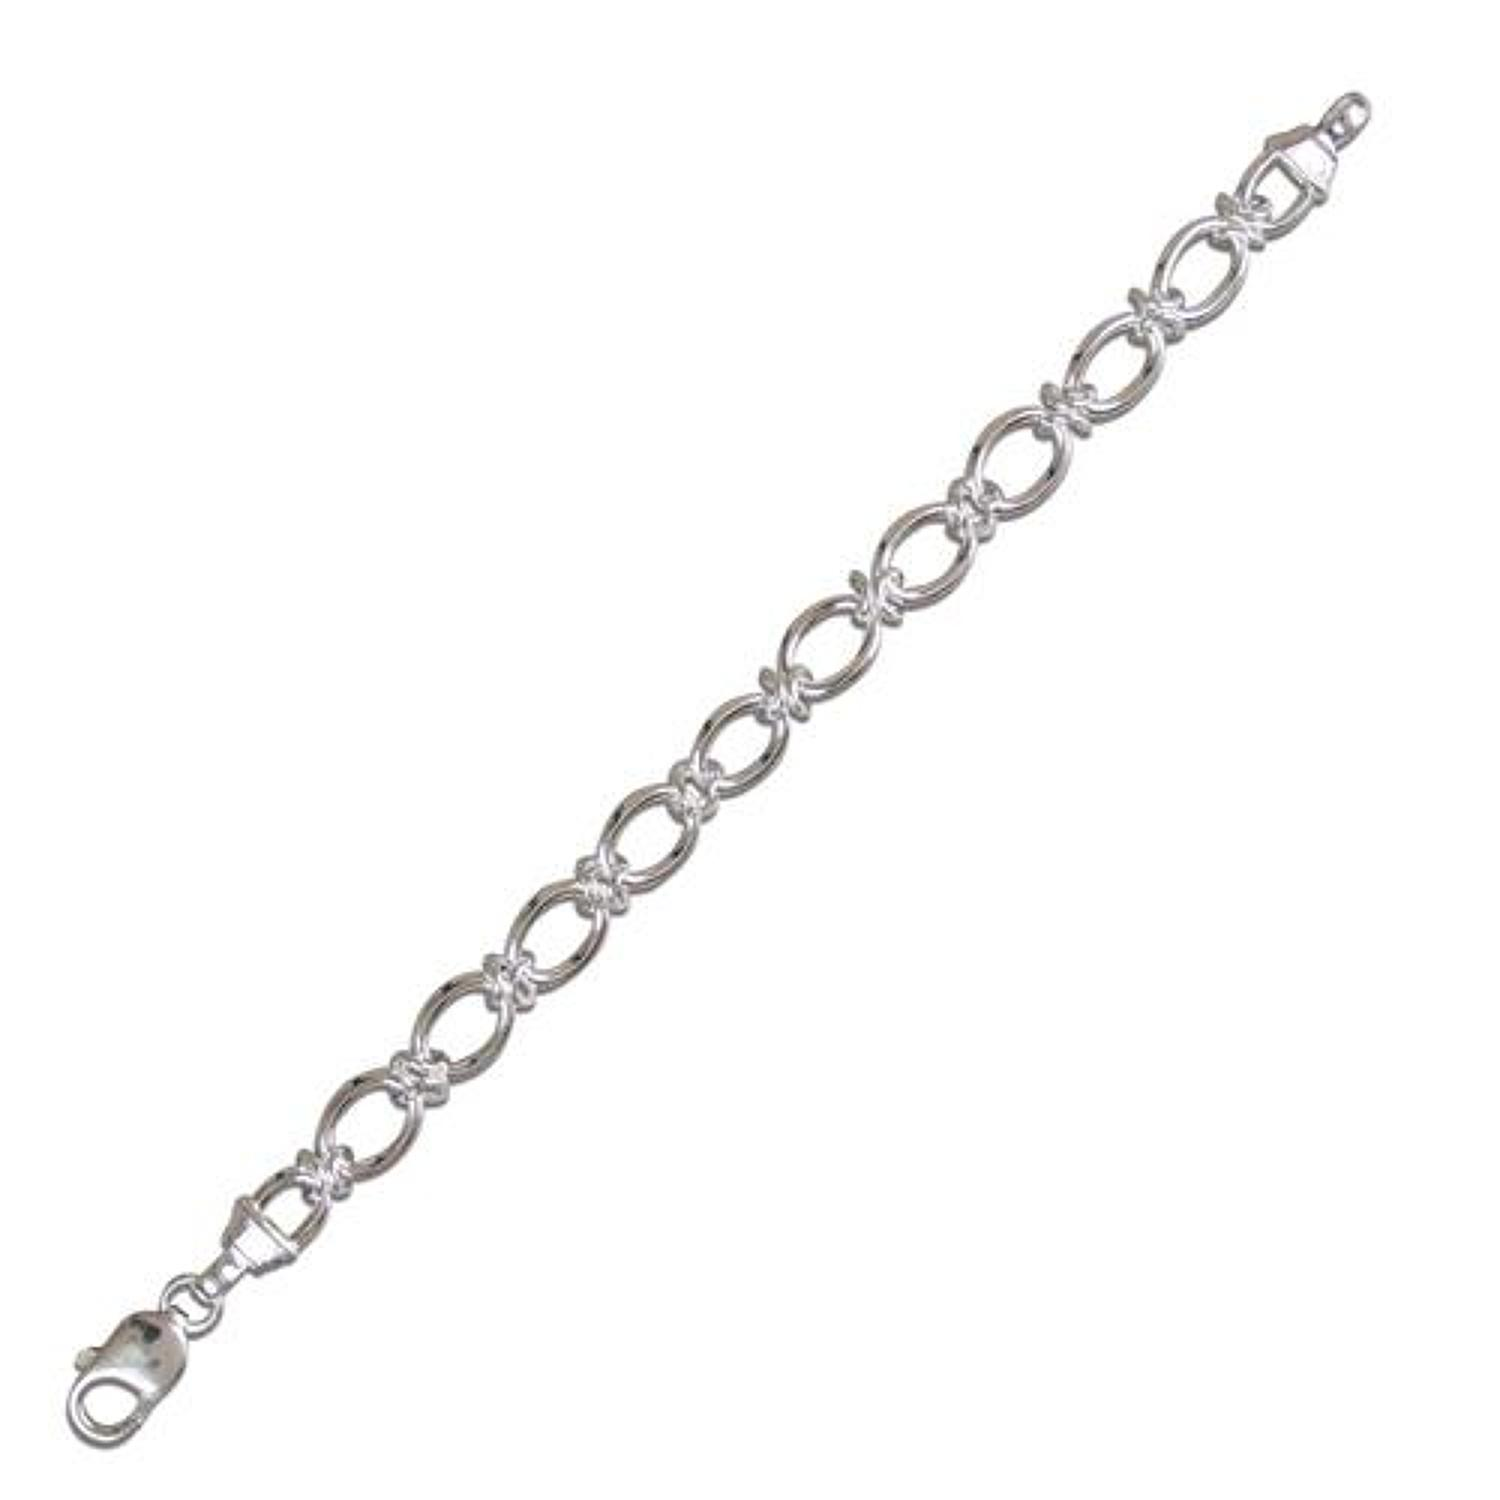 Sterling Silver Fancy Open Link Bracelet